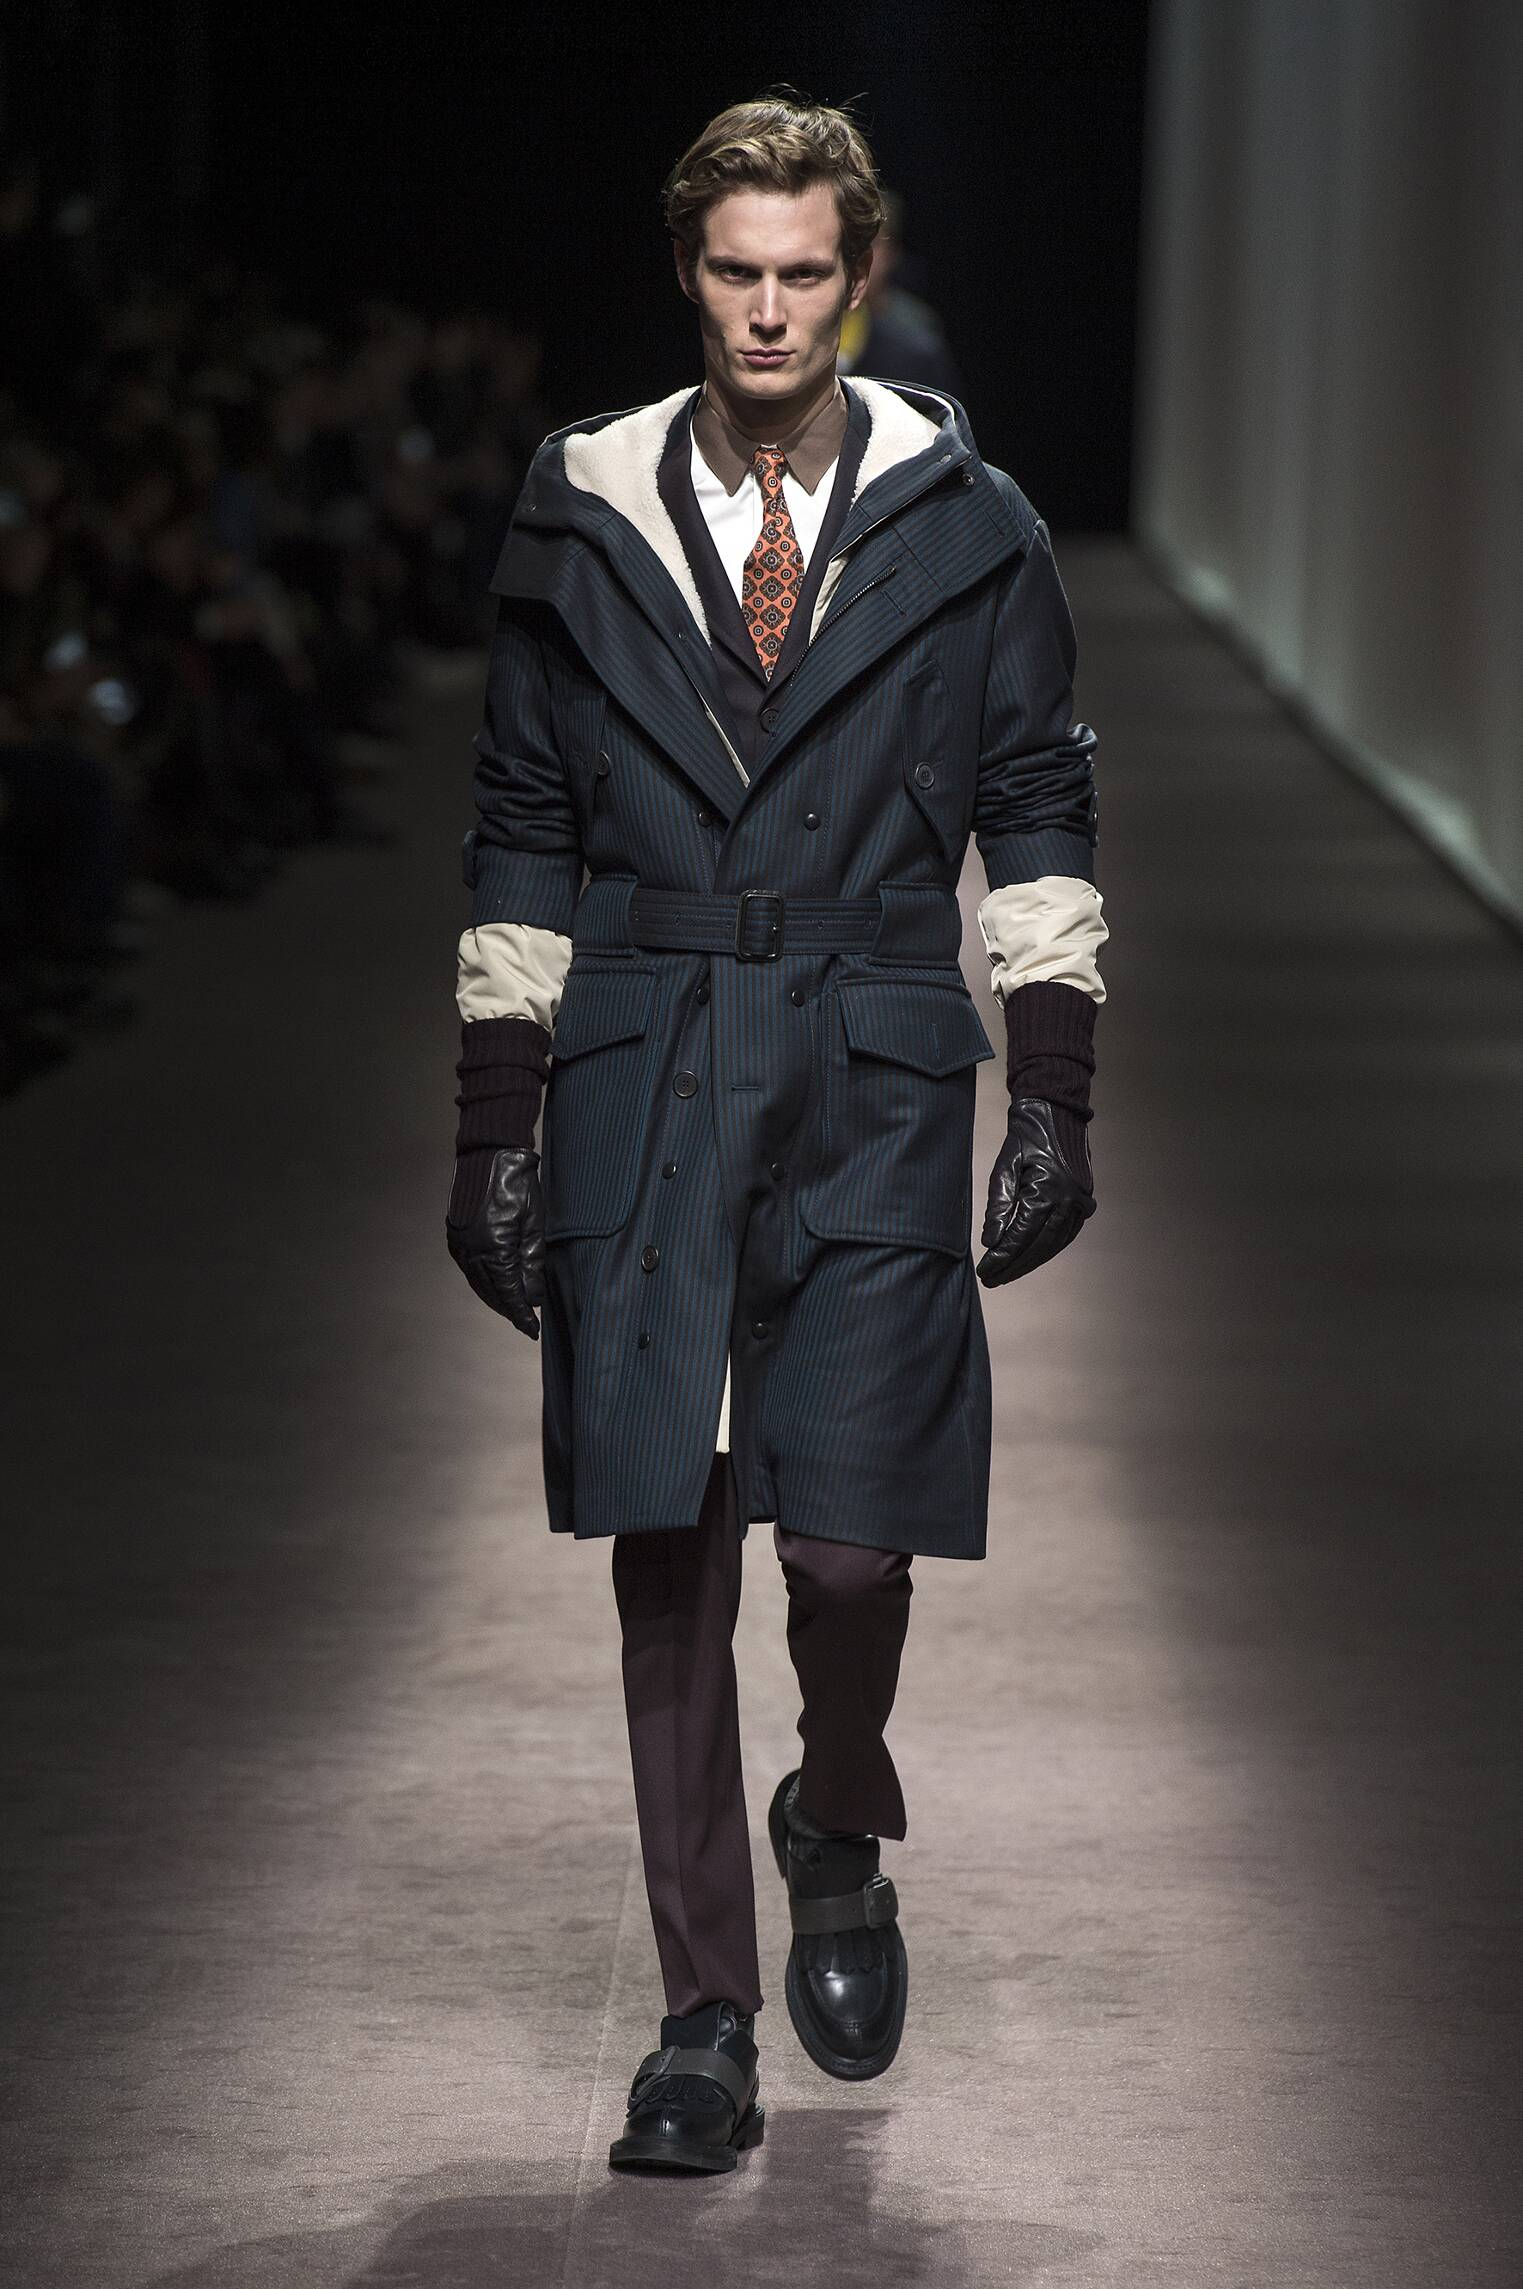 Catwalk Canali Man Fashion Show Winter 2016